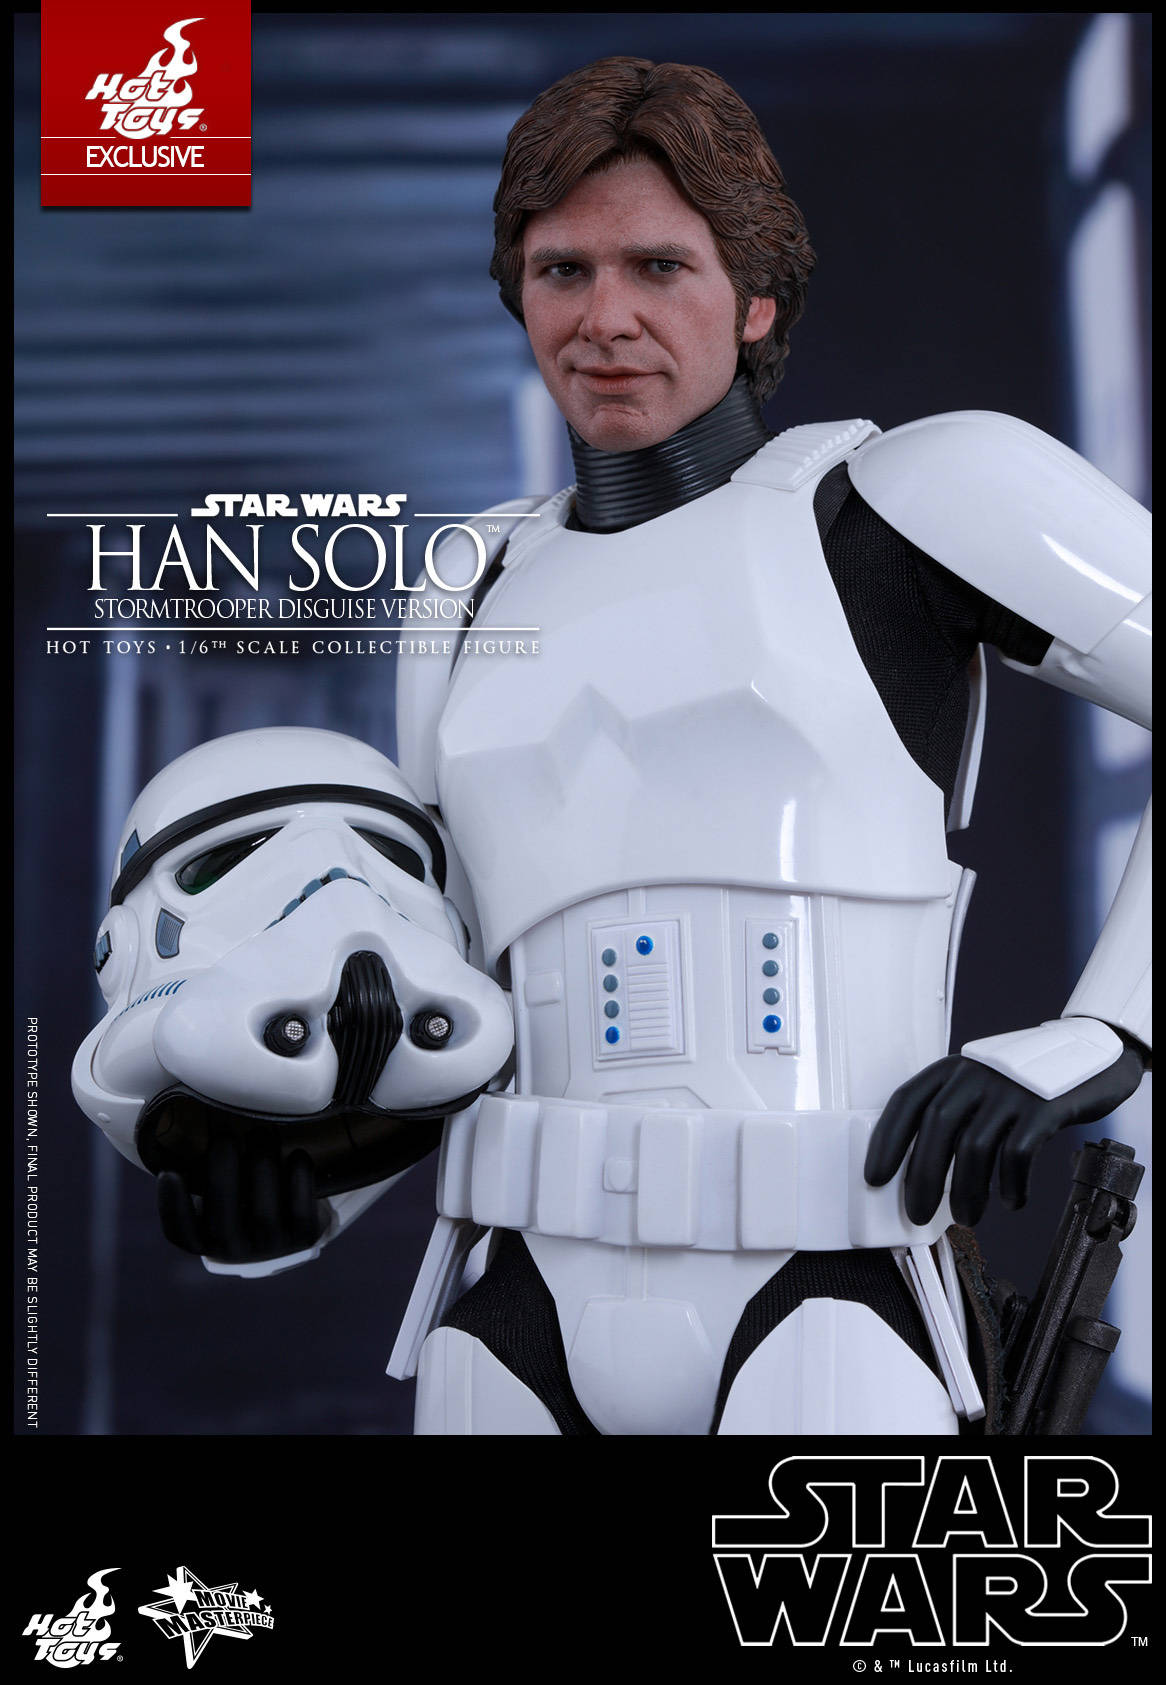 Hot-Toys---Star-Wars---Han-Solo-(Stormtrooper-Disguise-Version)-Collectible-Figure PR8